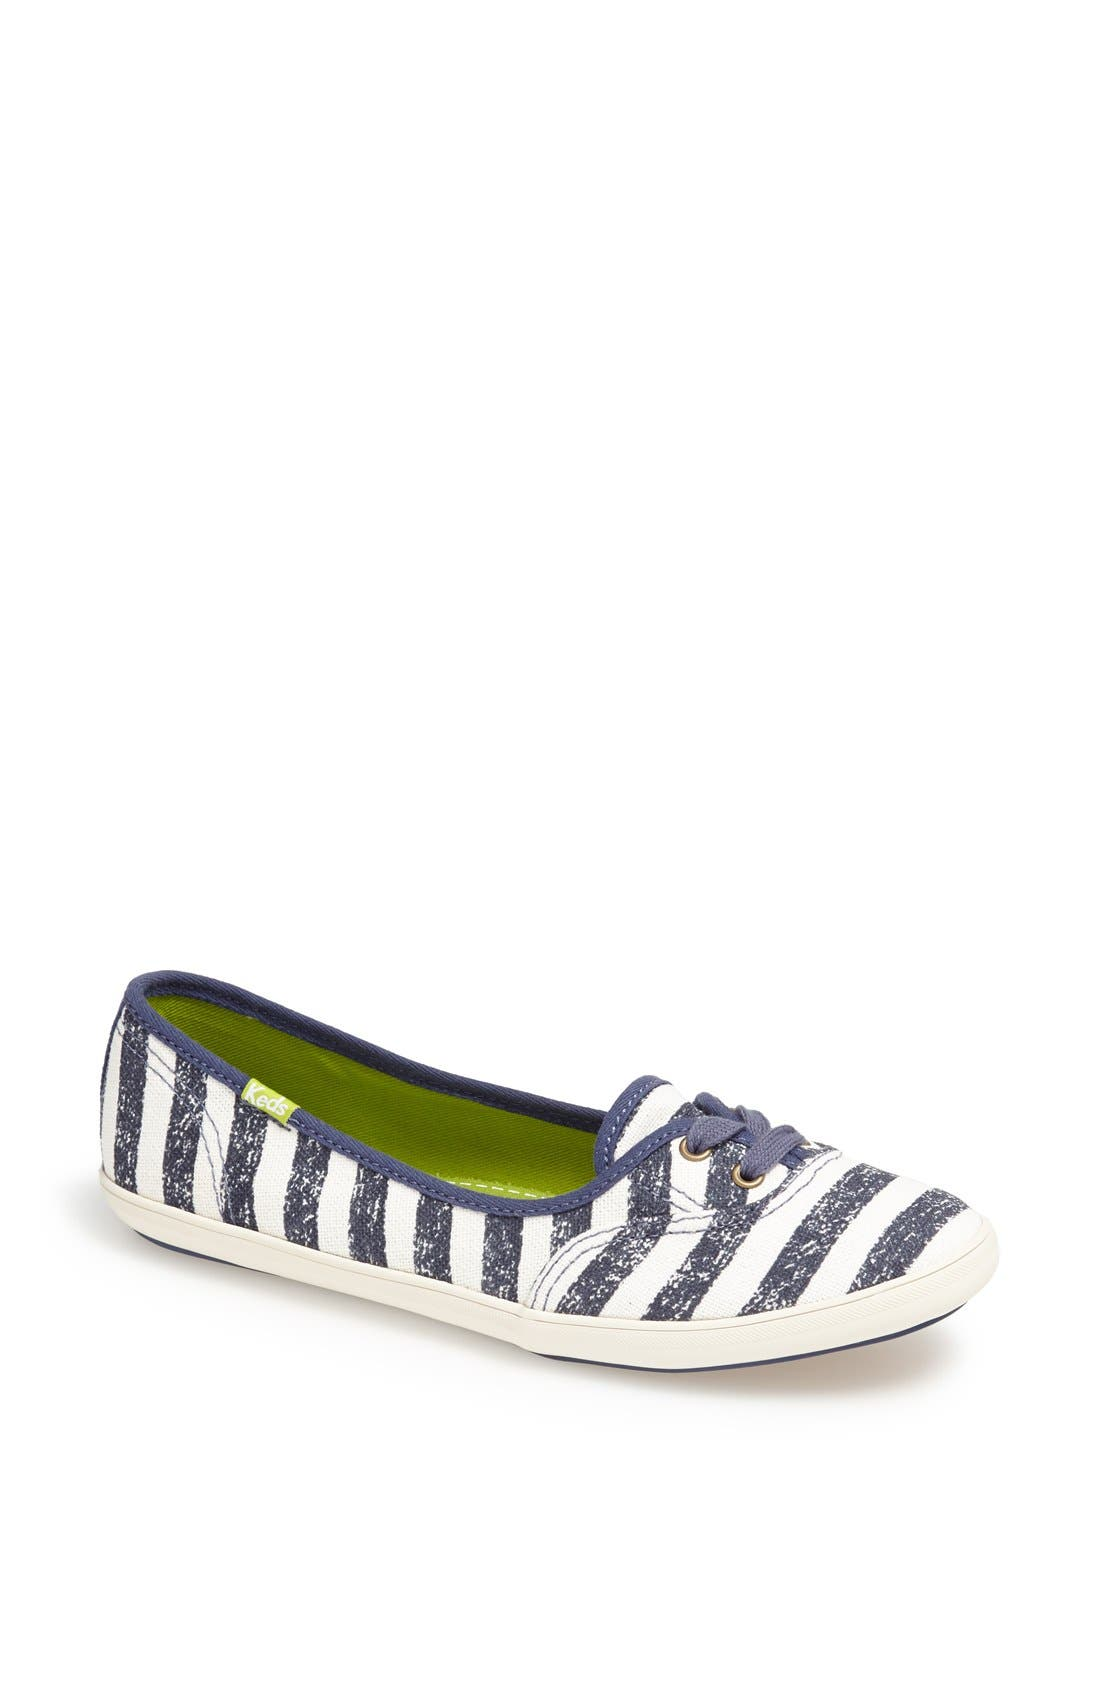 Main Image - Keds® 'Teacup' Slip-On (Women)